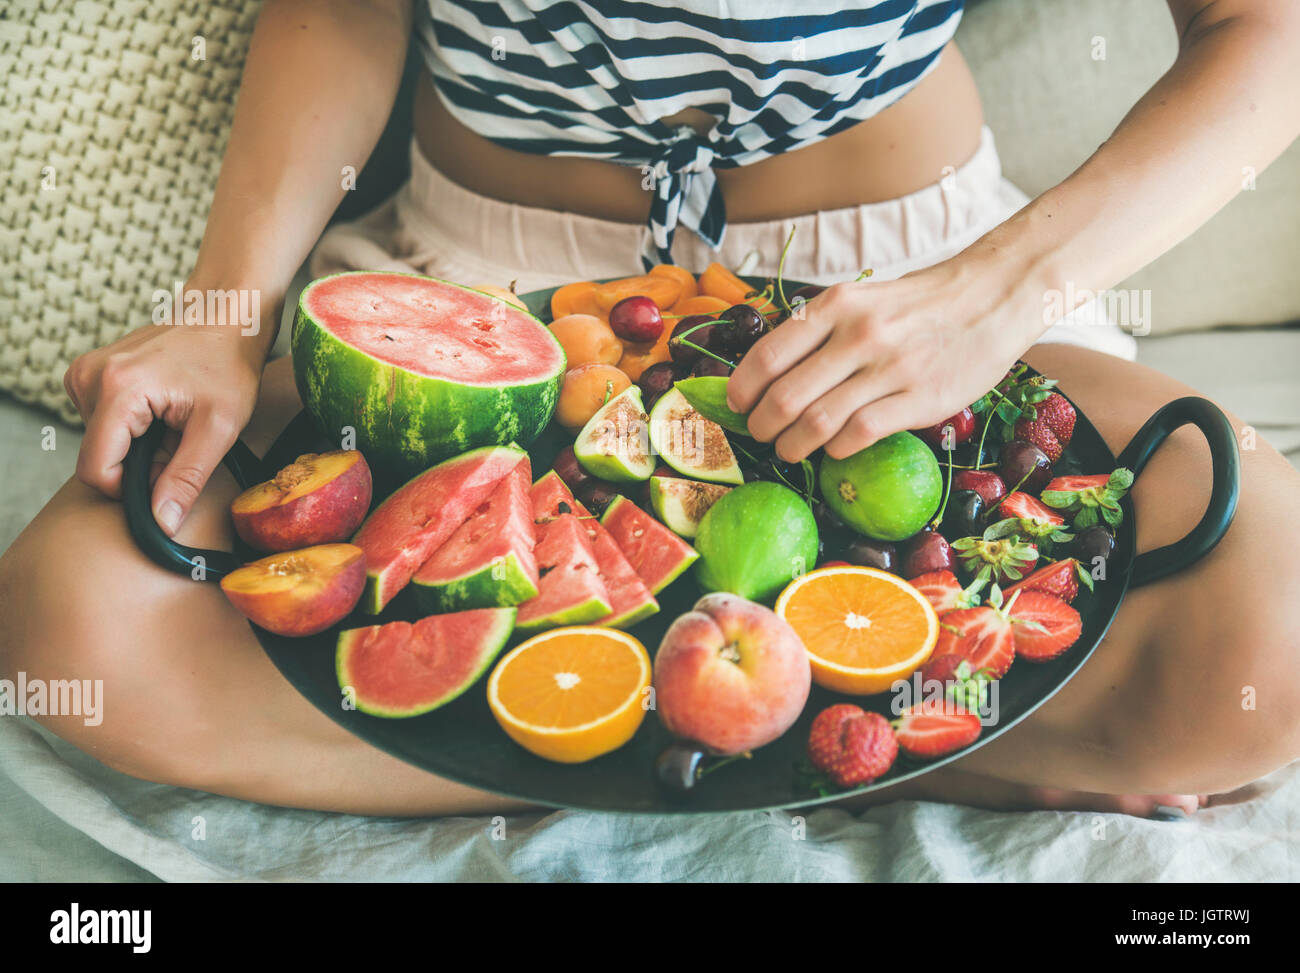 Summer healthy raw vegan clean eating breakfast in bed concept. Young girl wearing striped home shirt sitting and - Stock Image